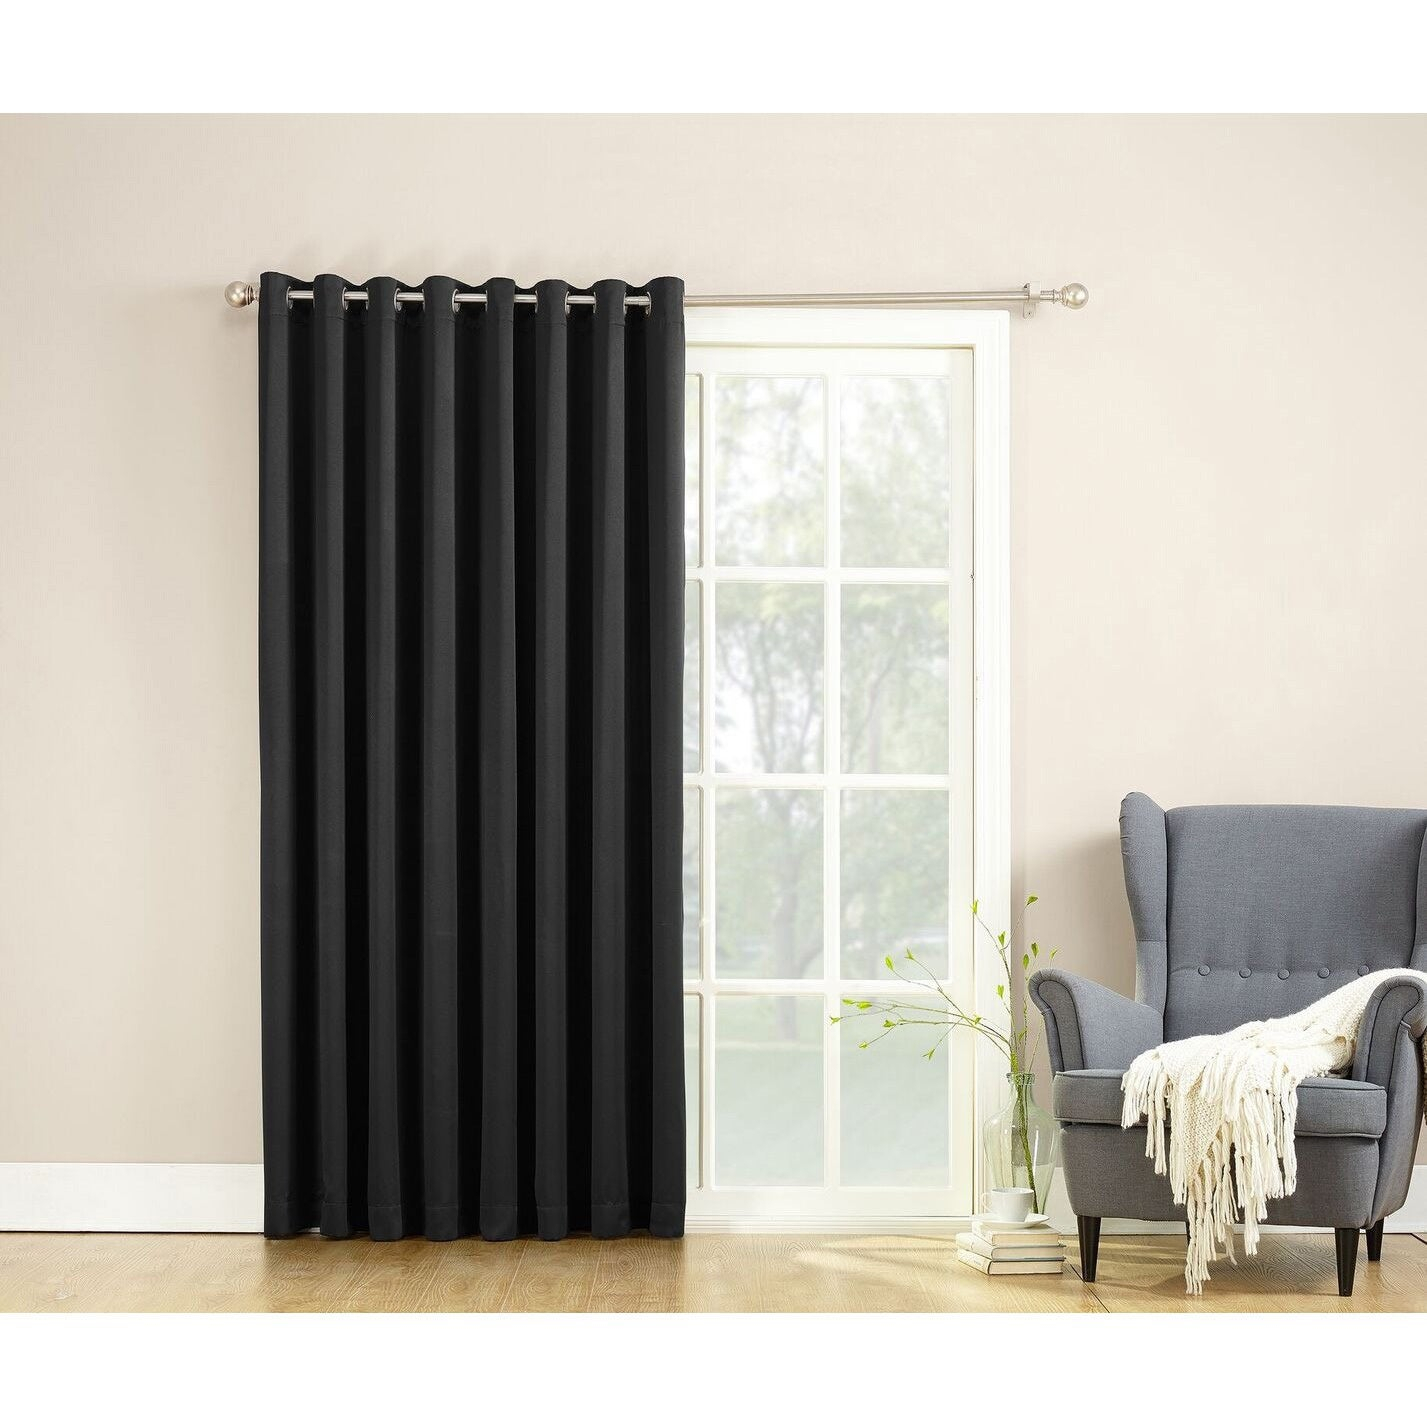 Porch & Den Nantahala Rod Pocket Room Darkening Patio Door Single Curtain Panel For Nantahala Rod Pocket Room Darkening Patio Door Single Curtain Panels (View 3 of 20)